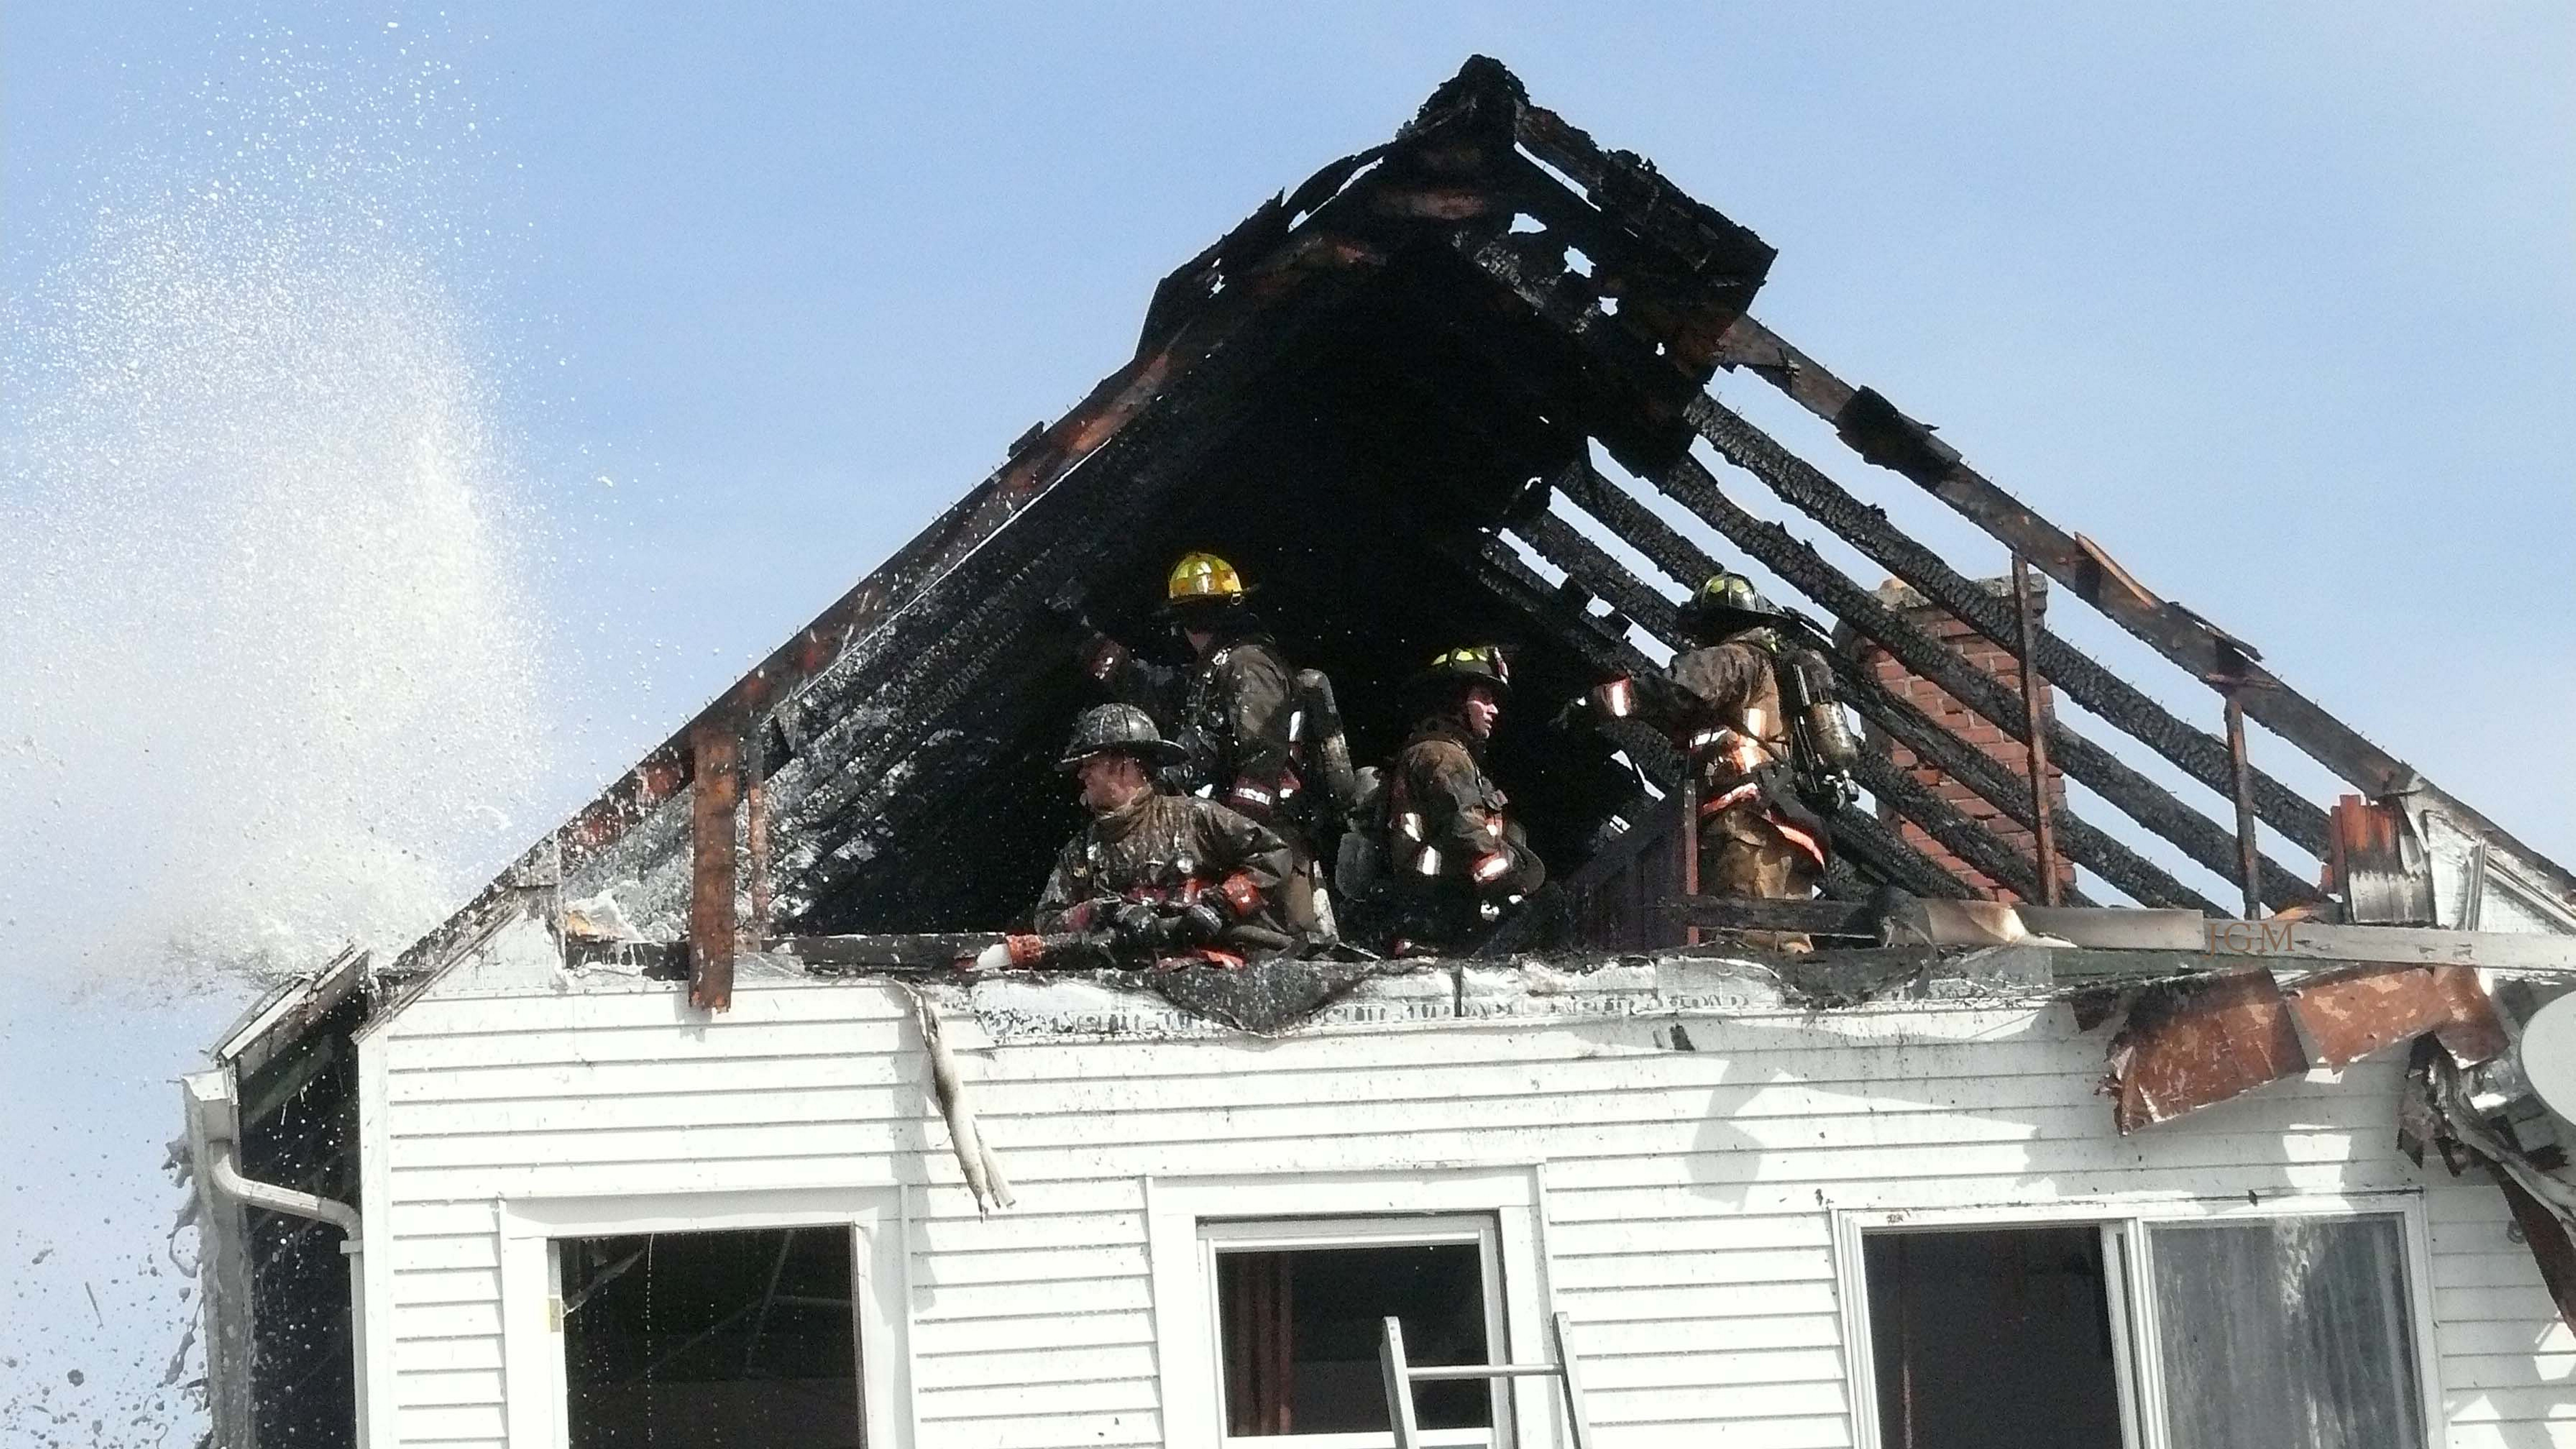 Buffalo firefighters at the scene of a fire at 101 Newfield on Feb. 28. (JoAnne McNamara/Special to The News)